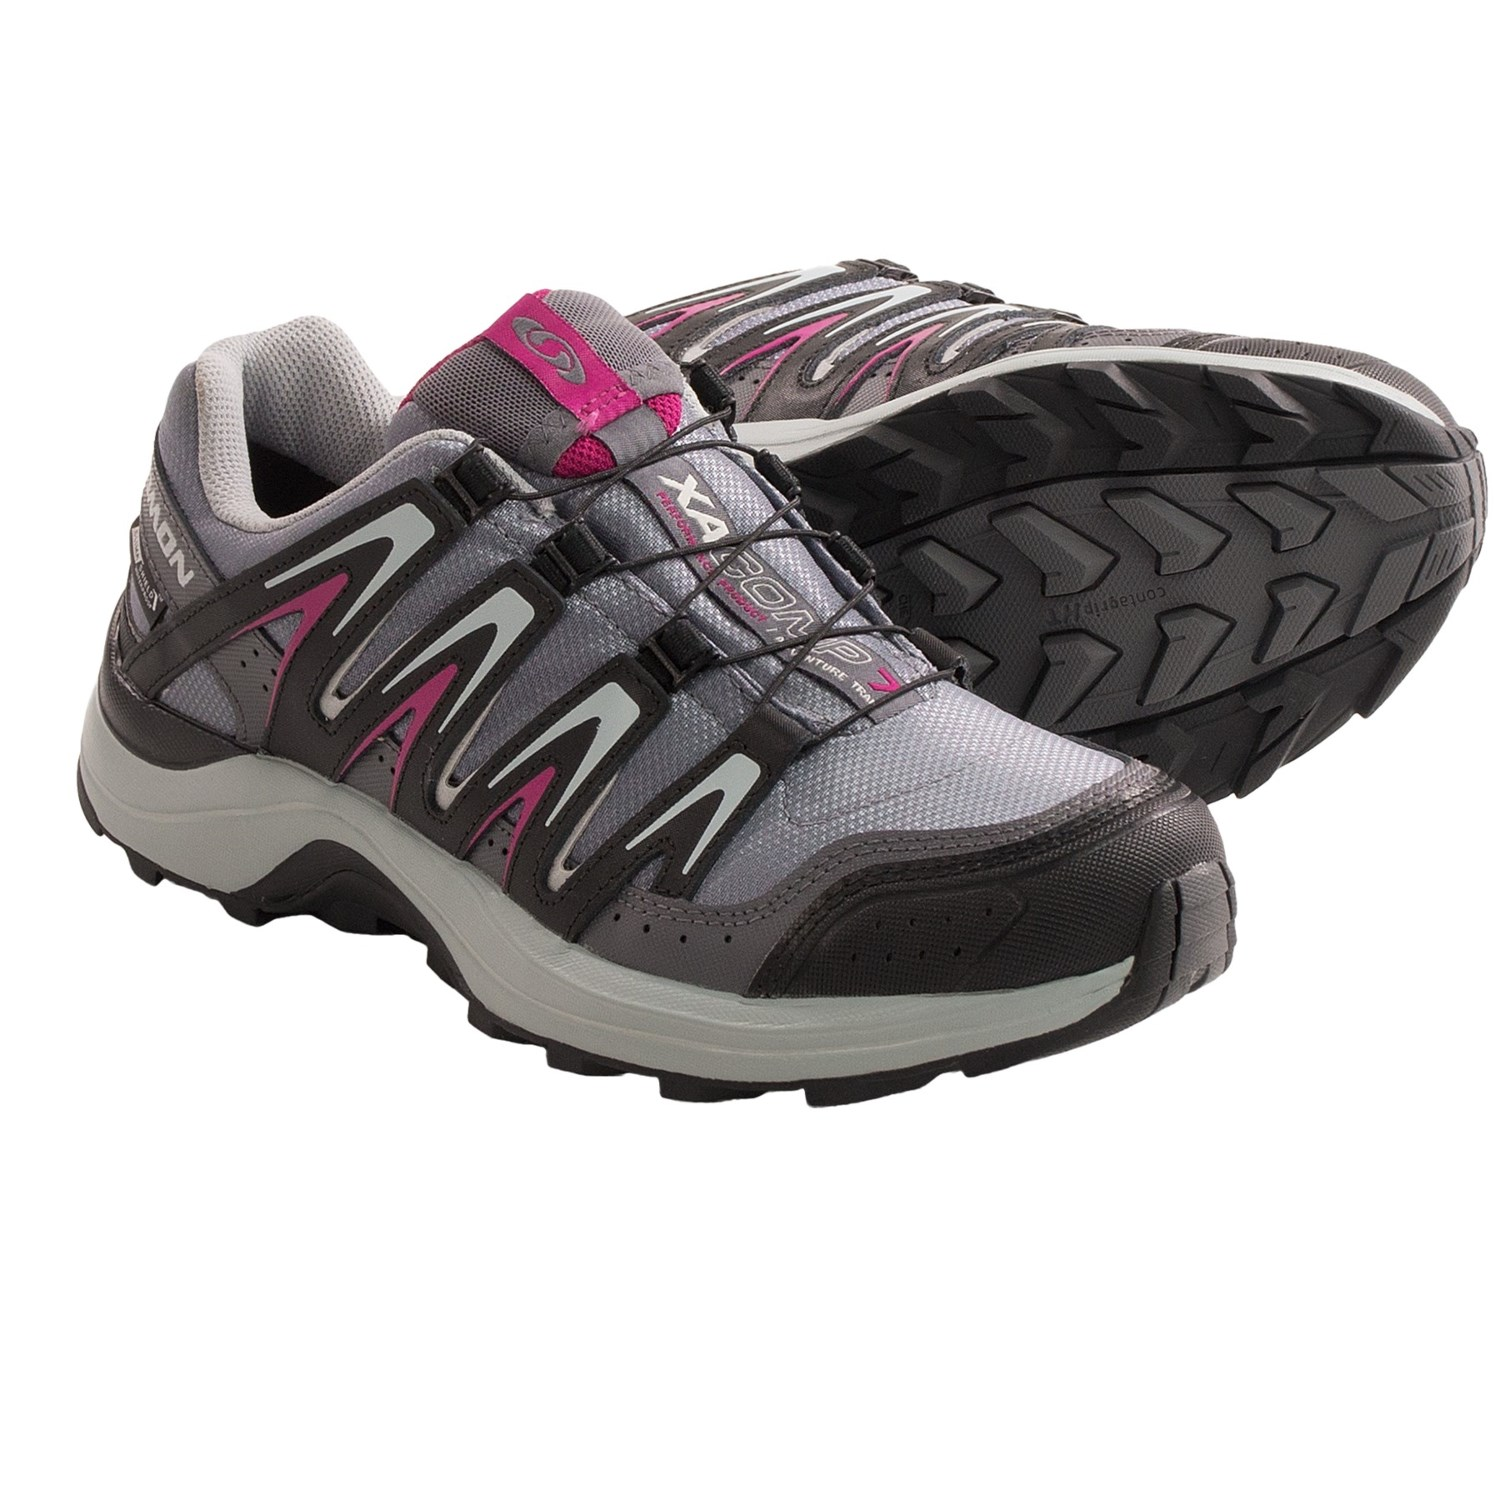 Waterproof shoes for women   Shoes online for women